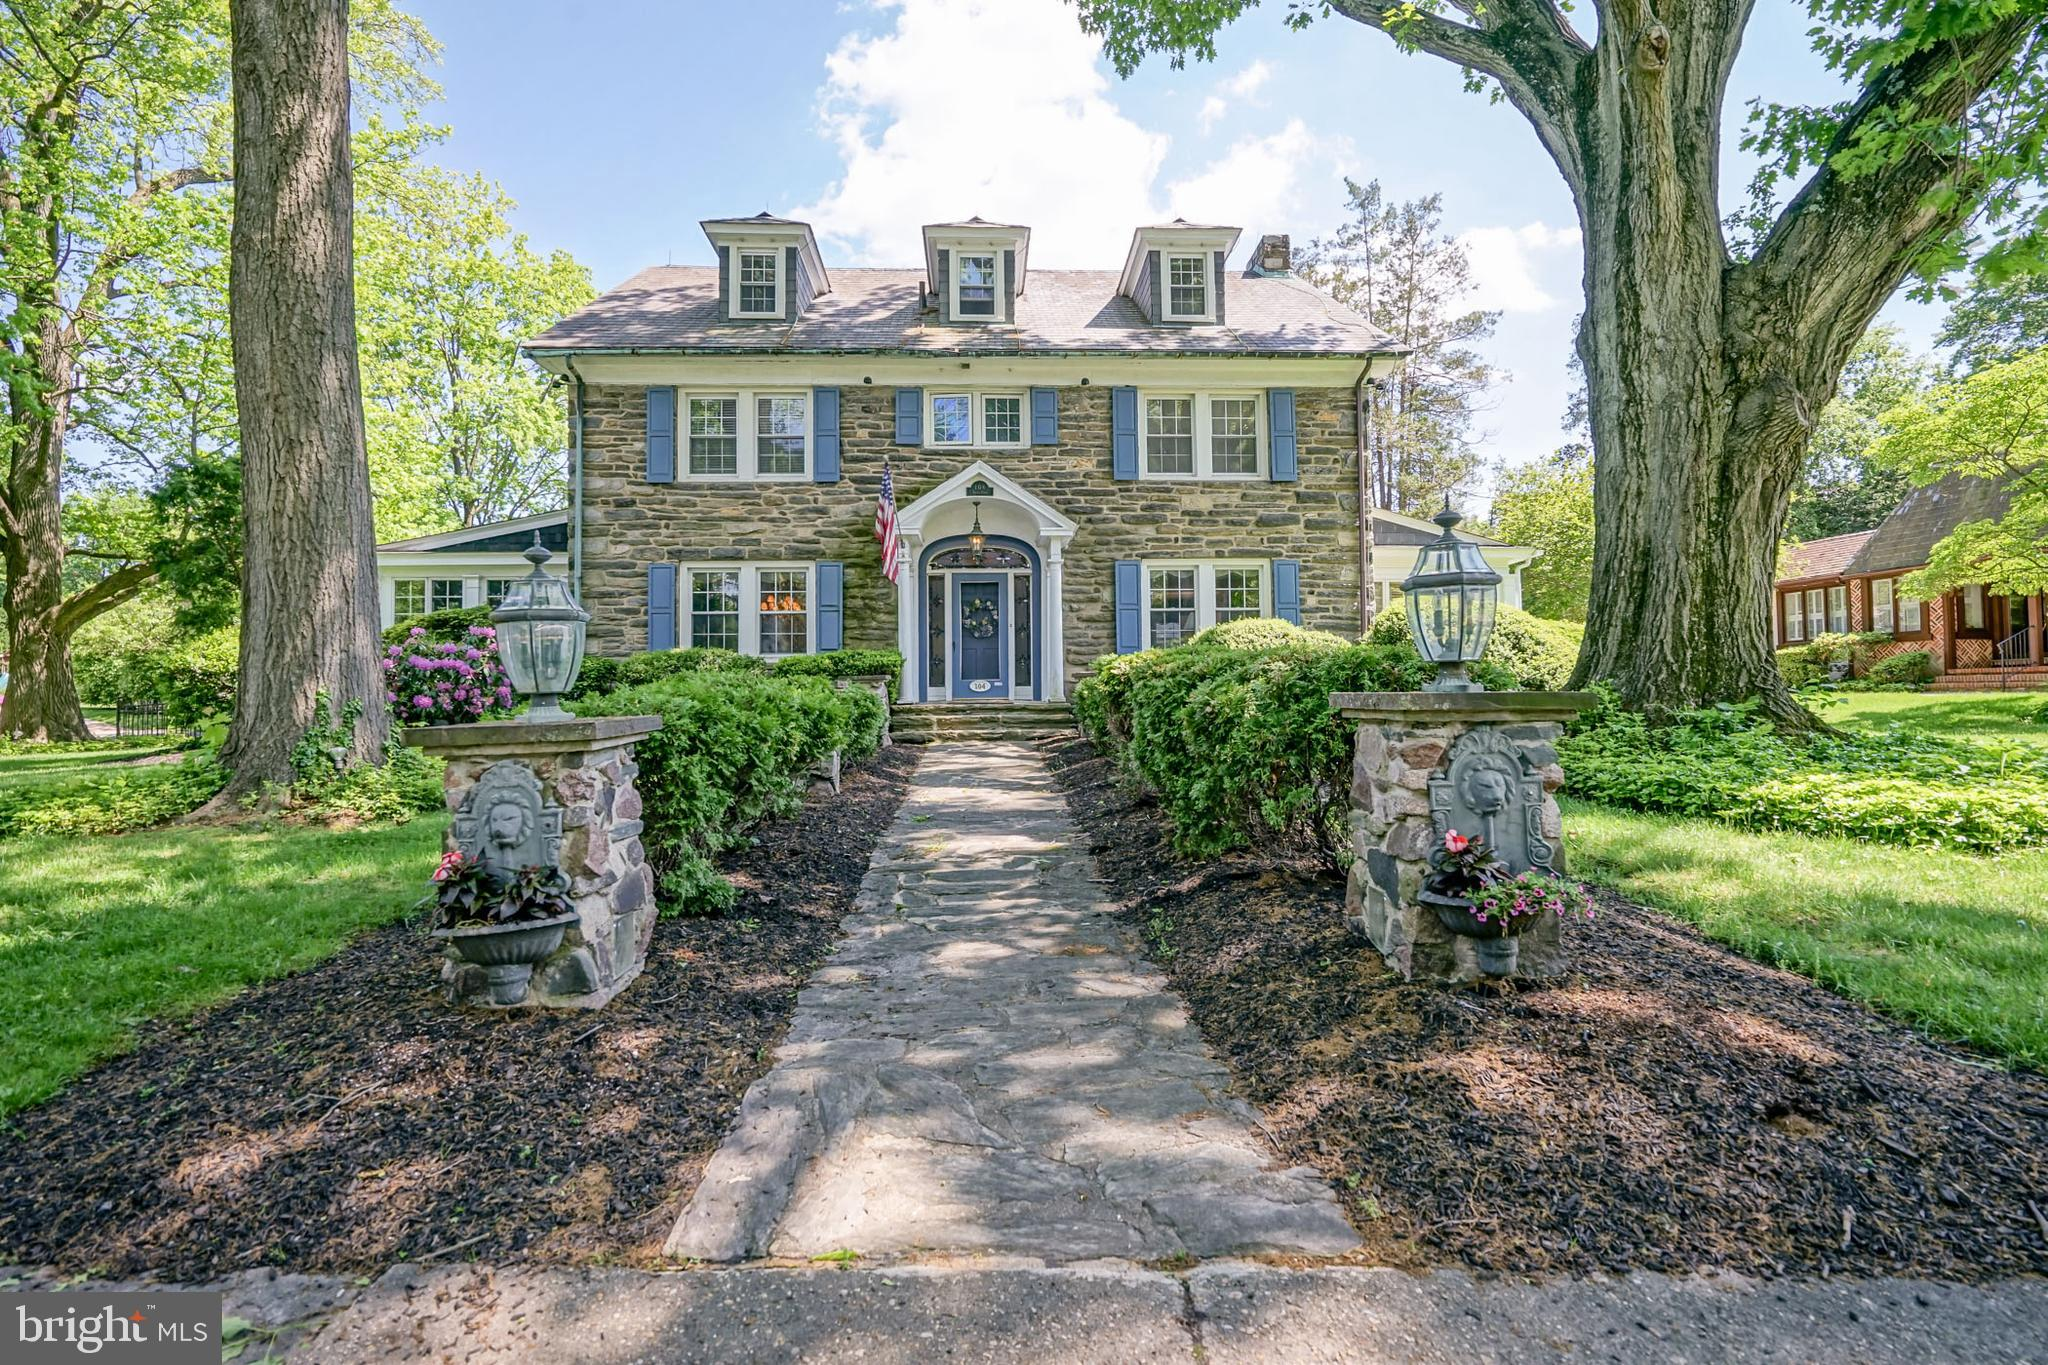 104 TREATY ELM LANE, HADDONFIELD, NJ 08033